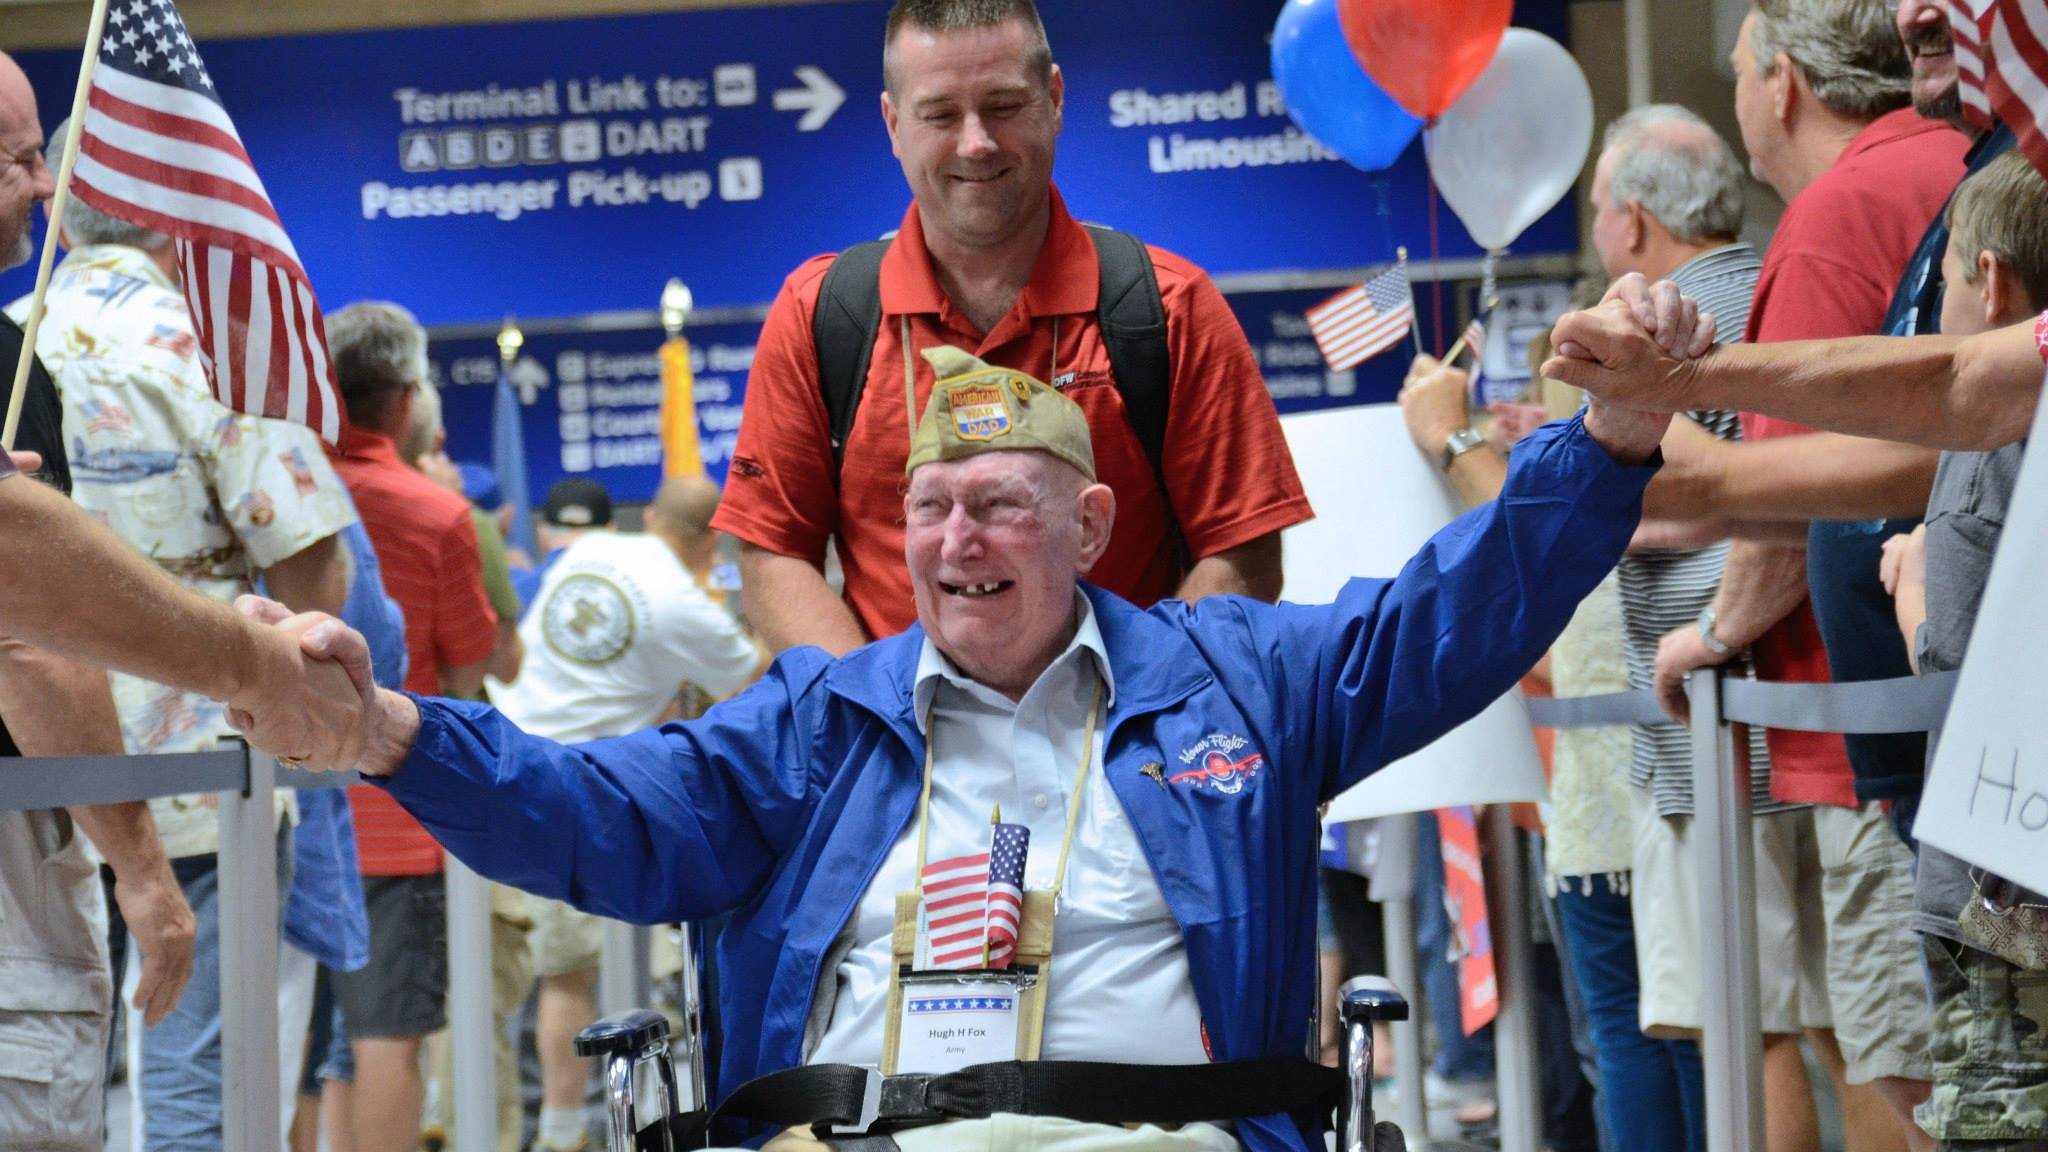 Honor Flight DFW 8th Annual Golf Classic gallery image #27